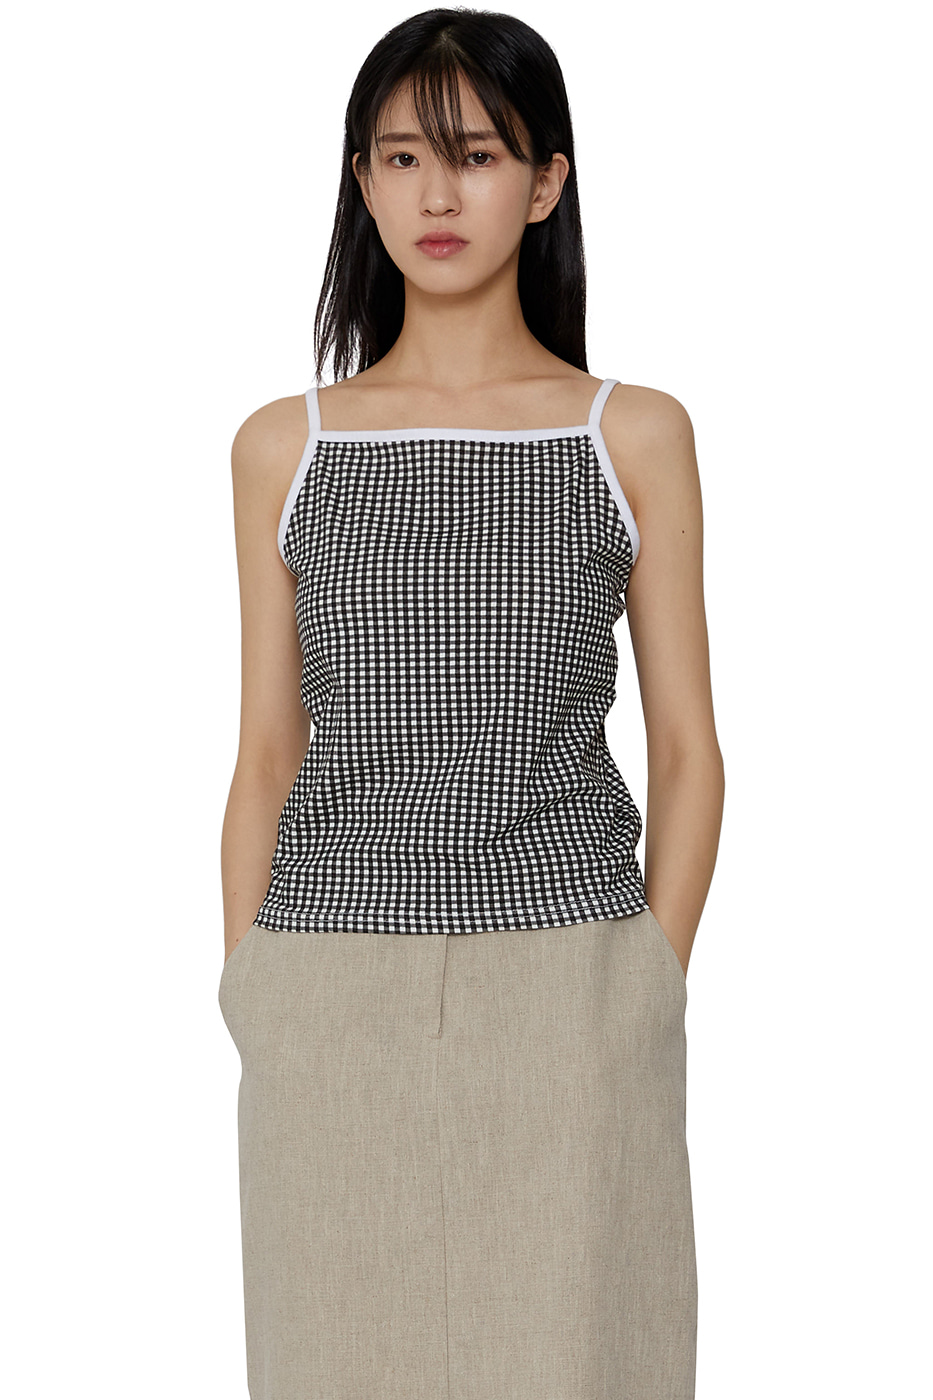 Queens check camisole